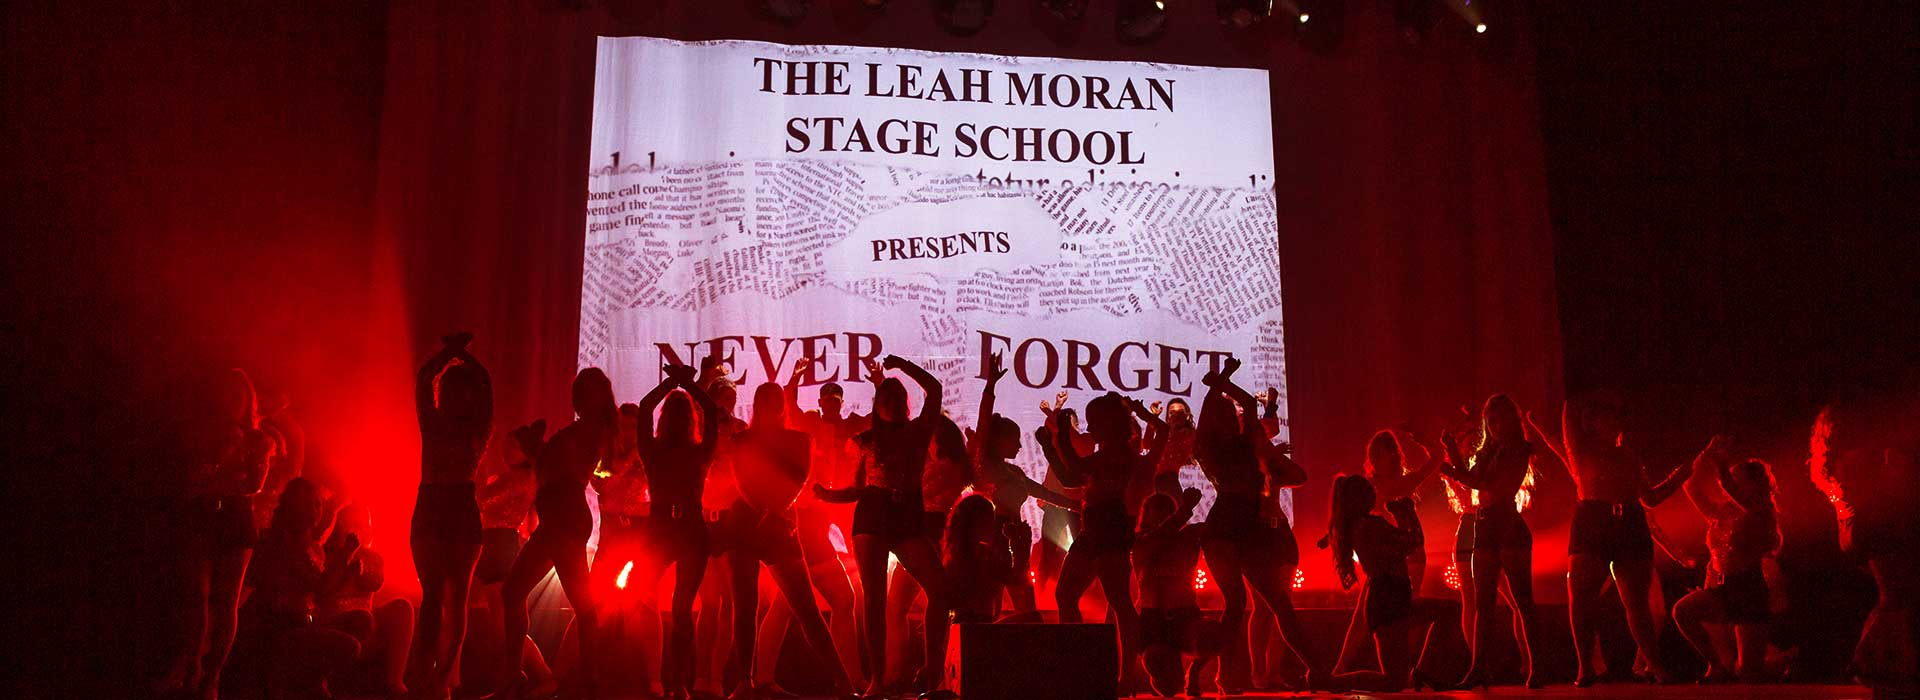 Leah-Moran-Stage-Schools-in-Naas-to-learn-acting